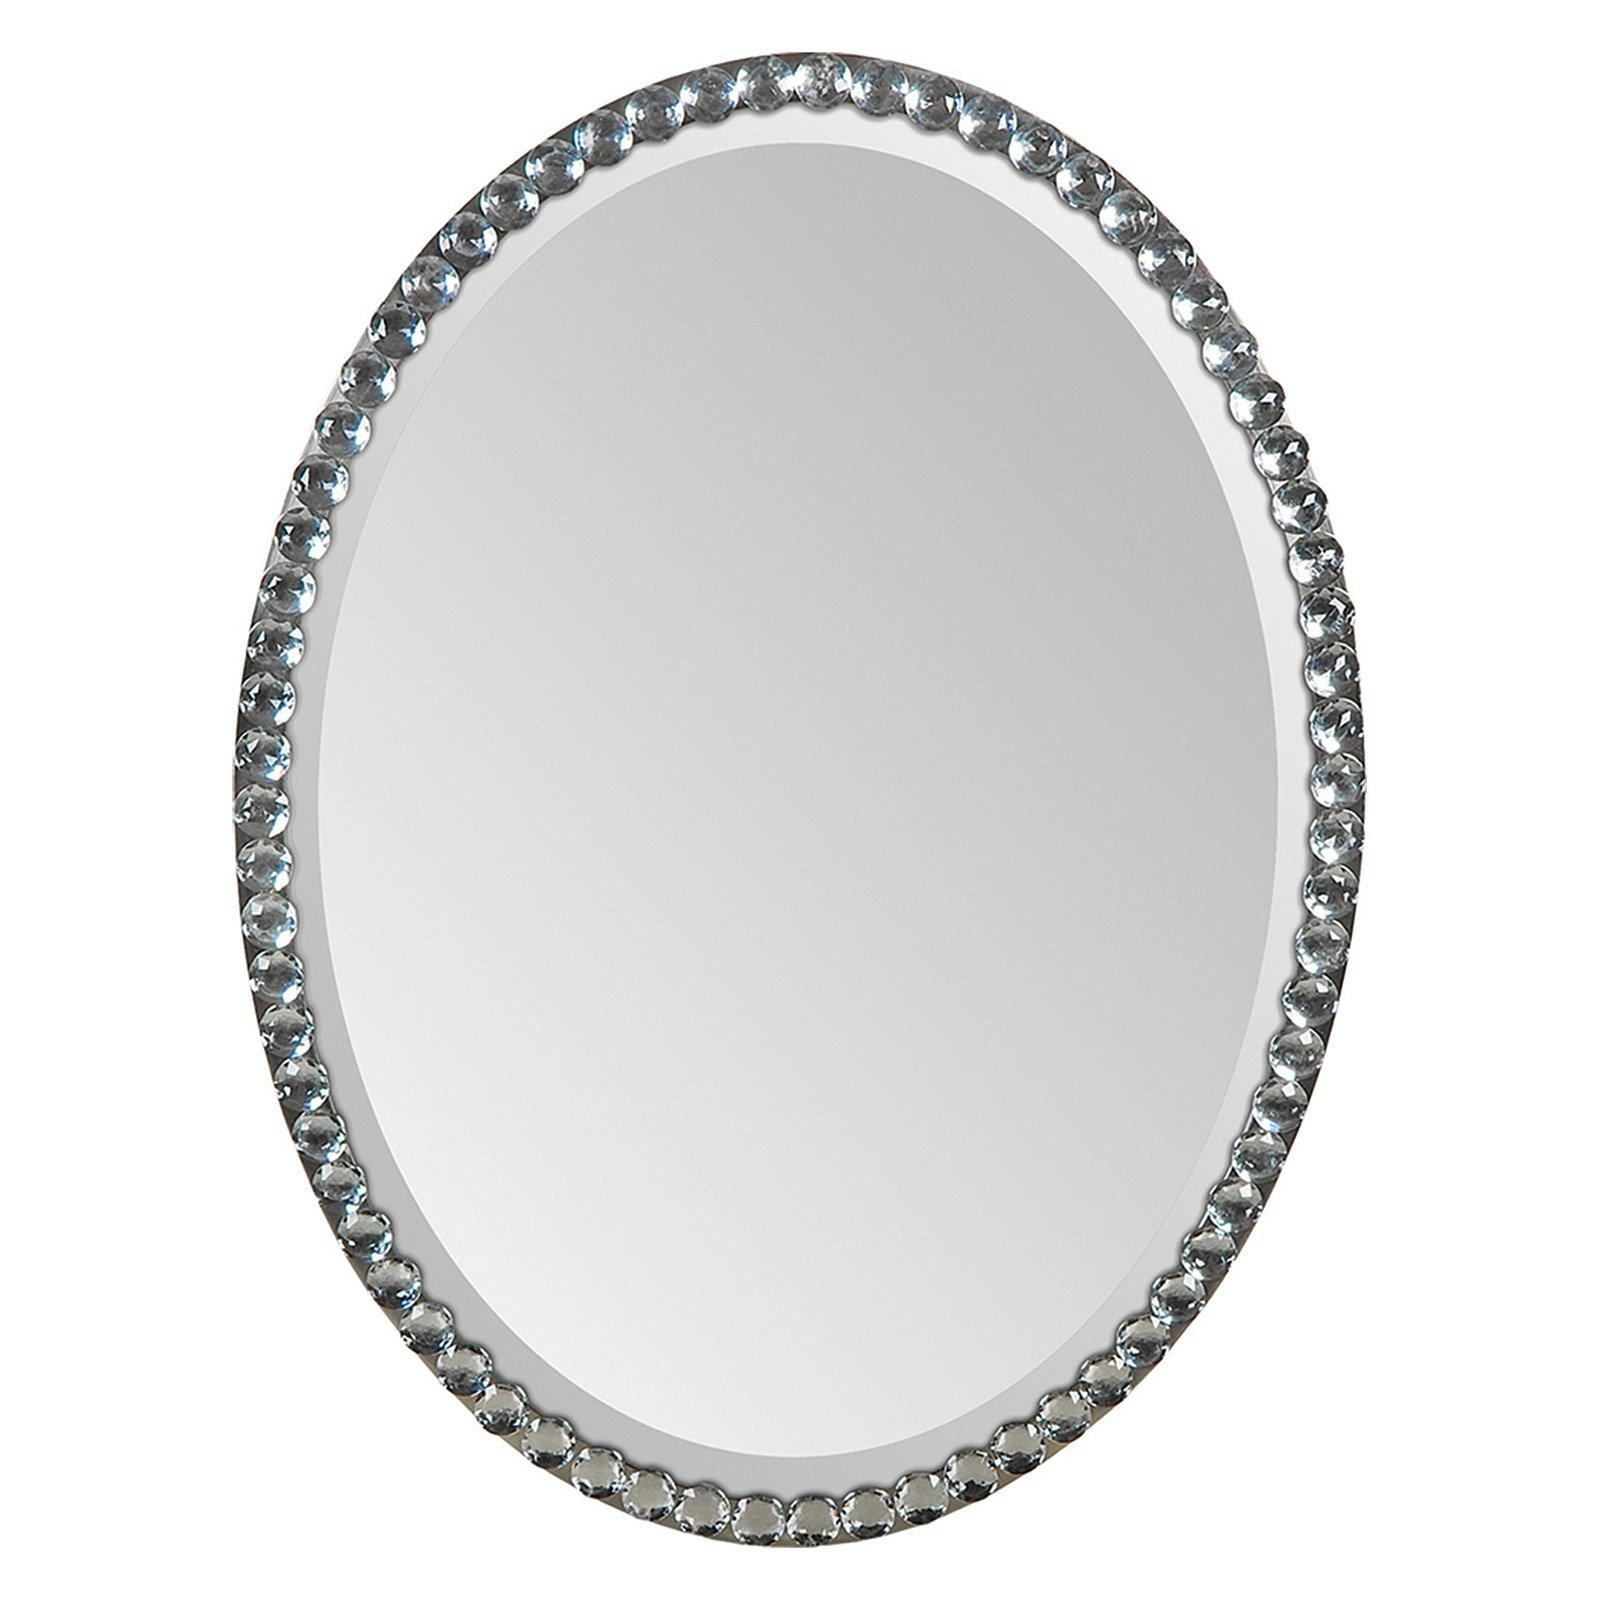 Ren Wil Oval Crystal Framed Wall Mirror – 24W X 32H In (Image 10 of 20)